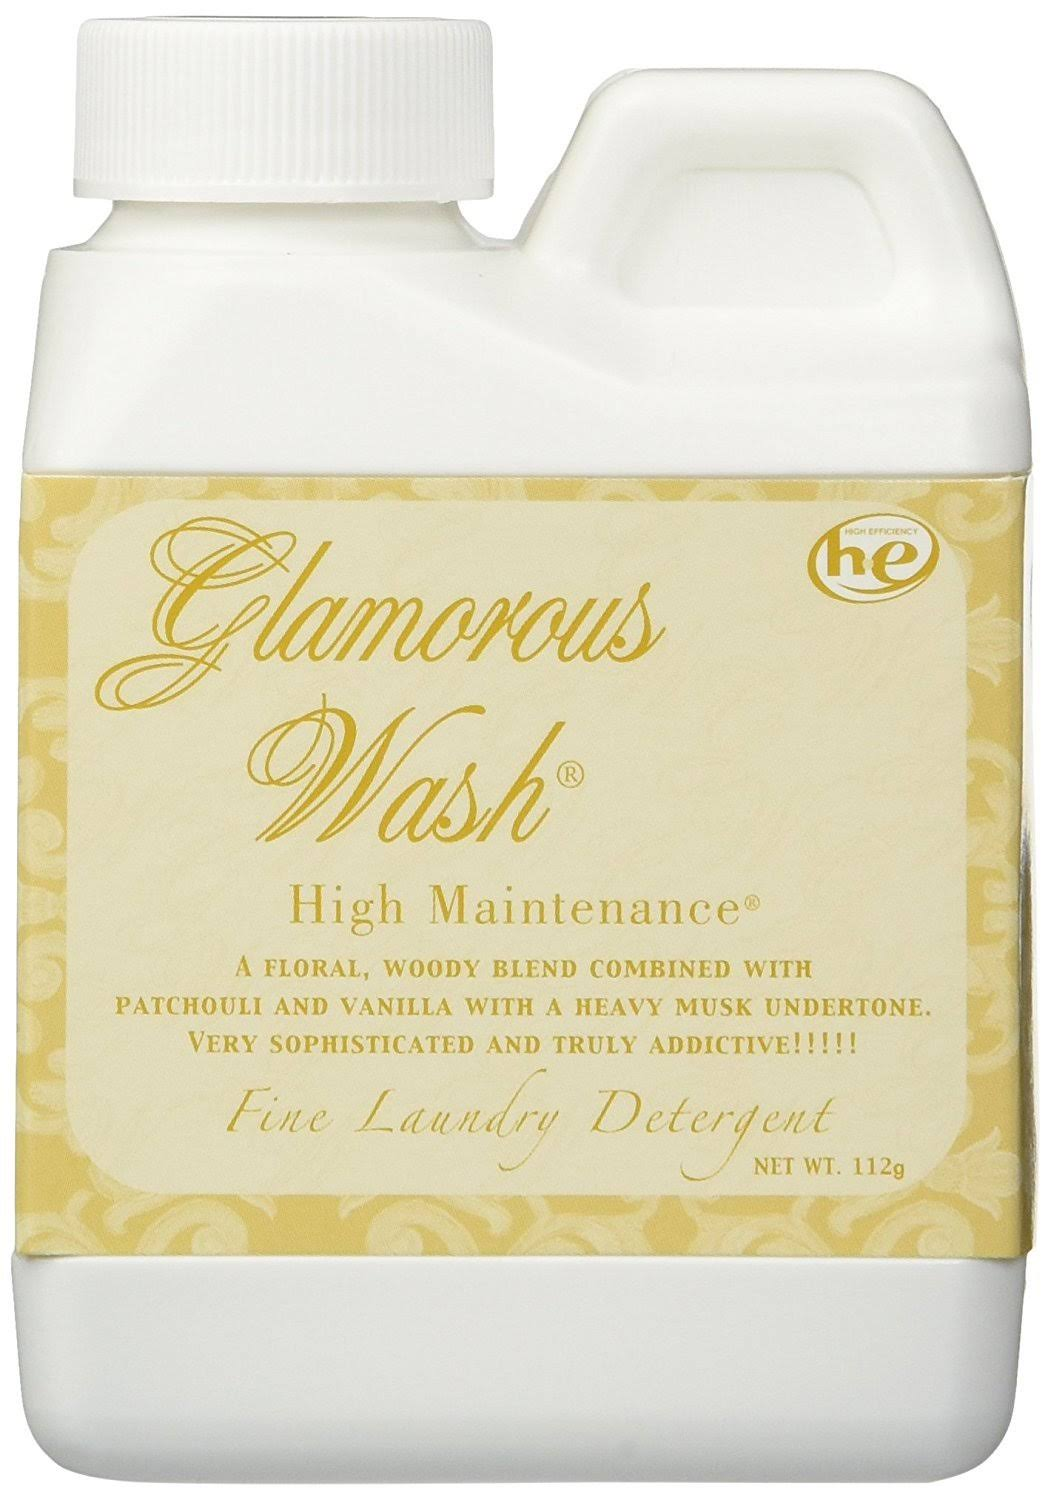 Tyler Candle - Glamorous Wash - High Maintenance 4 oz.